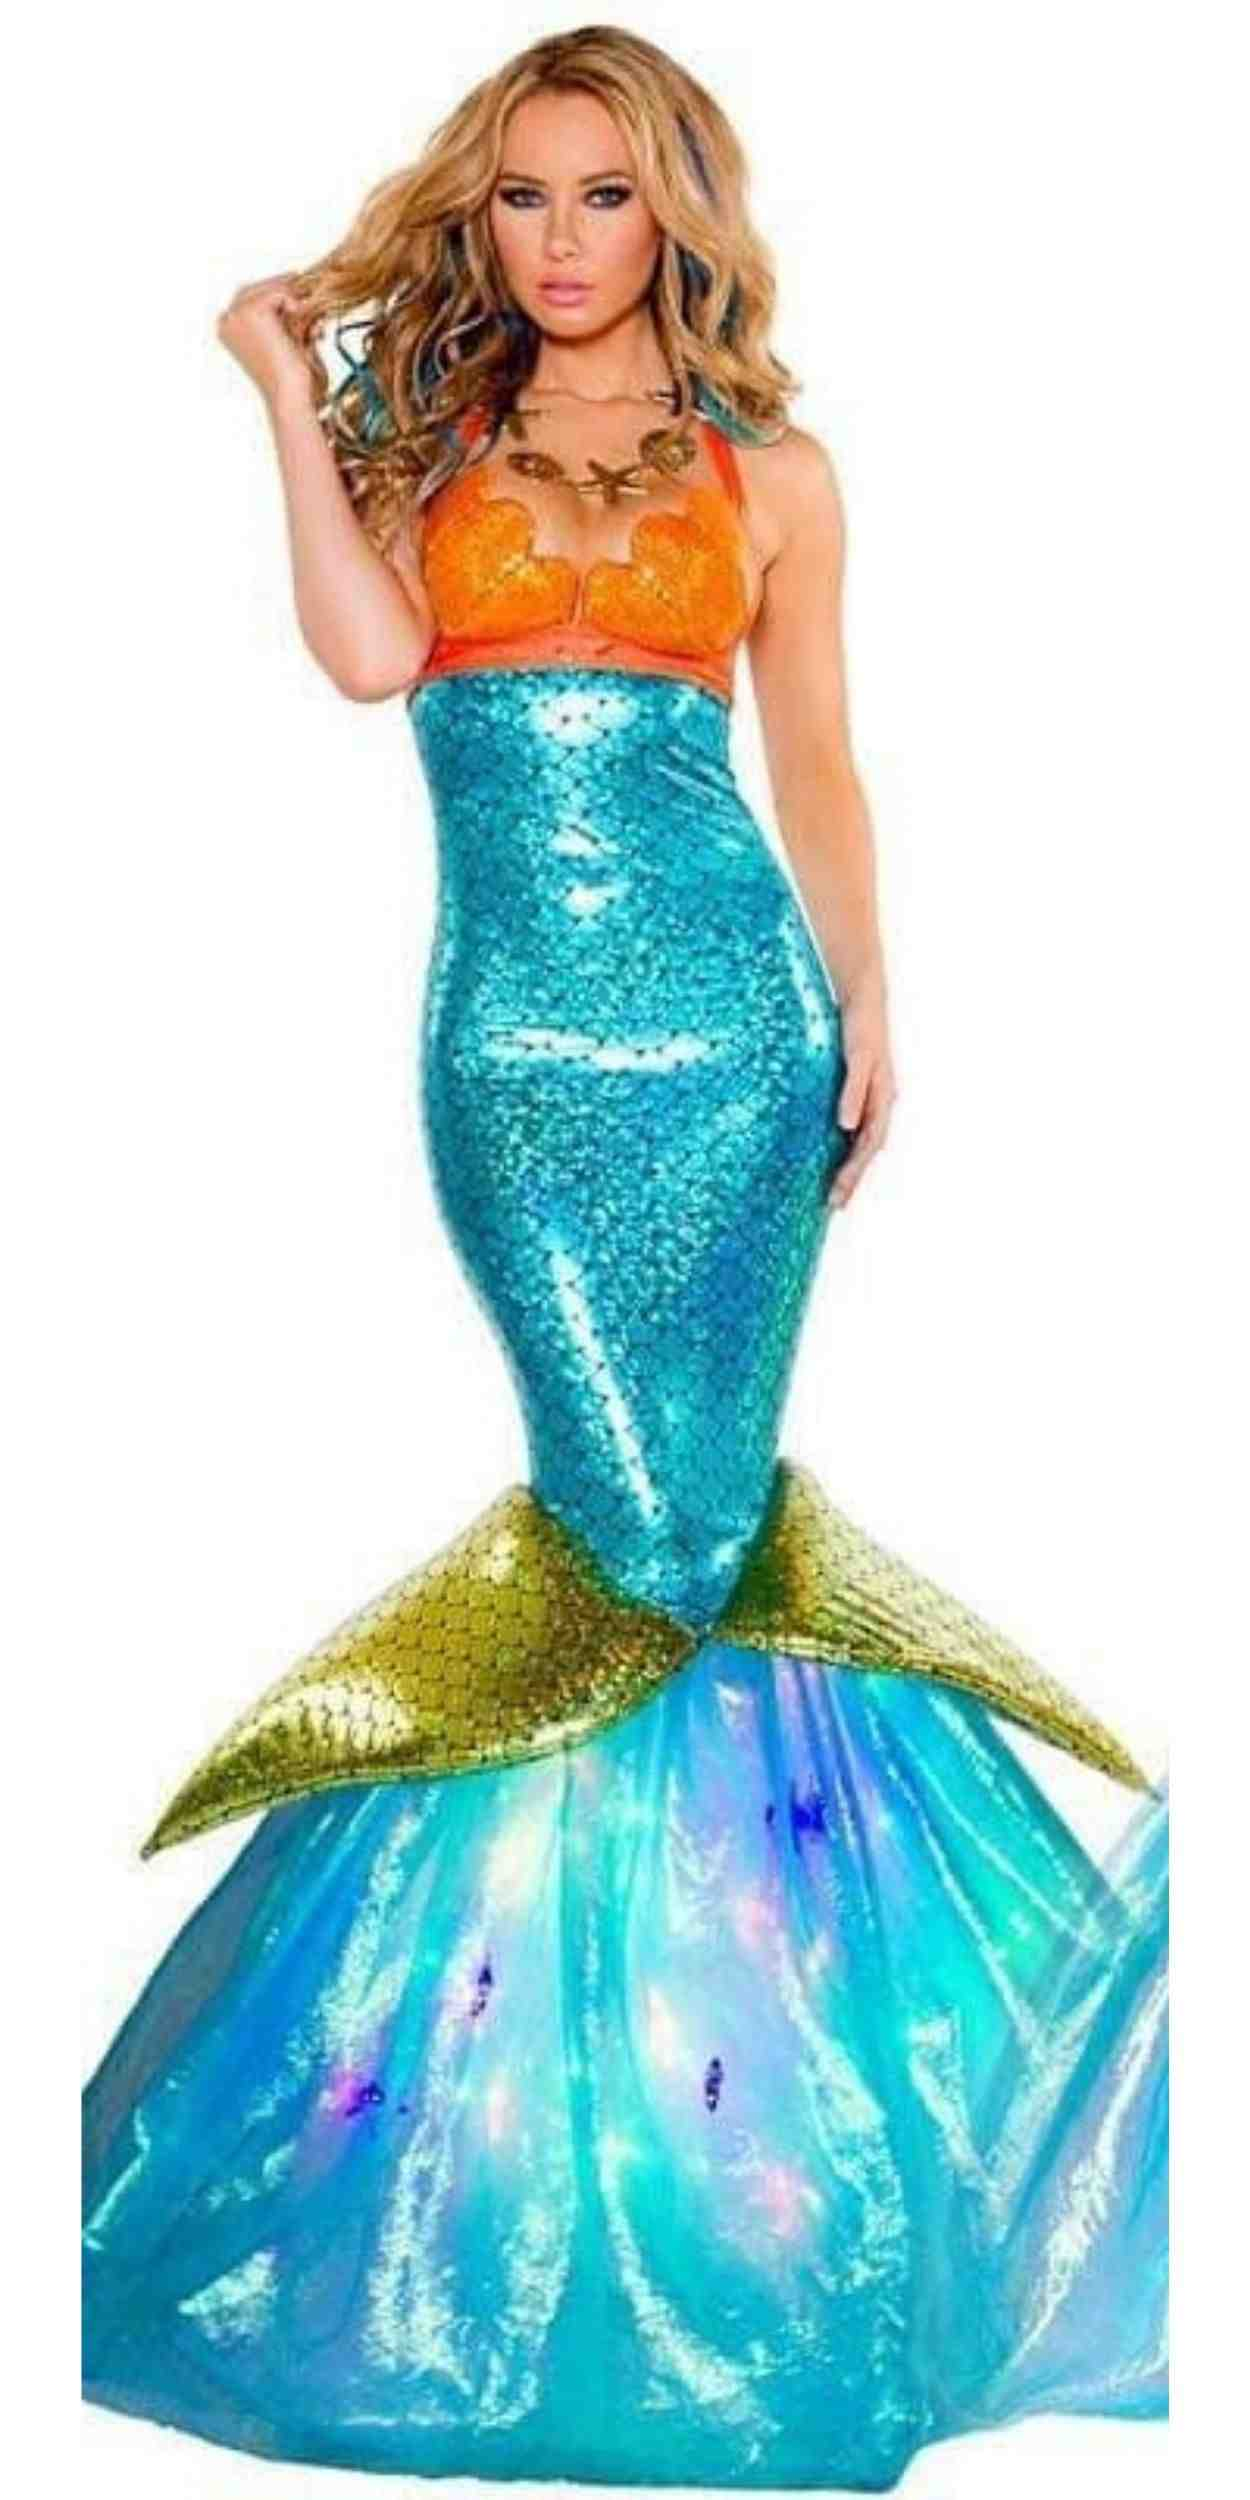 Woman in Mermaid Party Costume